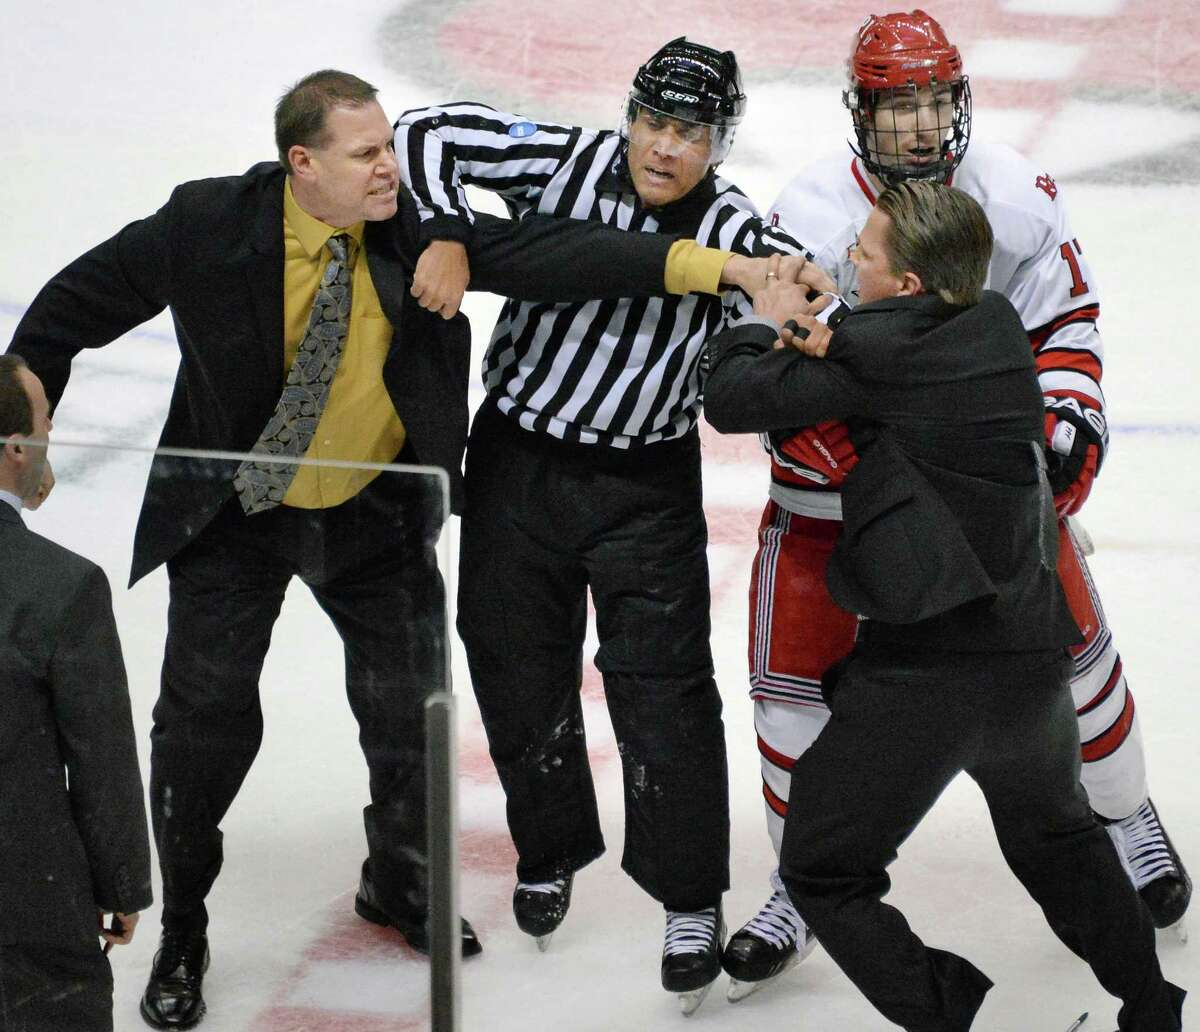 Union head coach Rick Bennett, left, and RPI head coach Seth Appert, at right, are pulled apart by a referee and RPI's #17 Milos Bubela during a bench clearing brawl after RPI beat Union for the Mayor's Cup at the Times Union Center Saturday Jan. 25, 2014, in Albany, NY. (John Carl D'Annibale / Times Union)